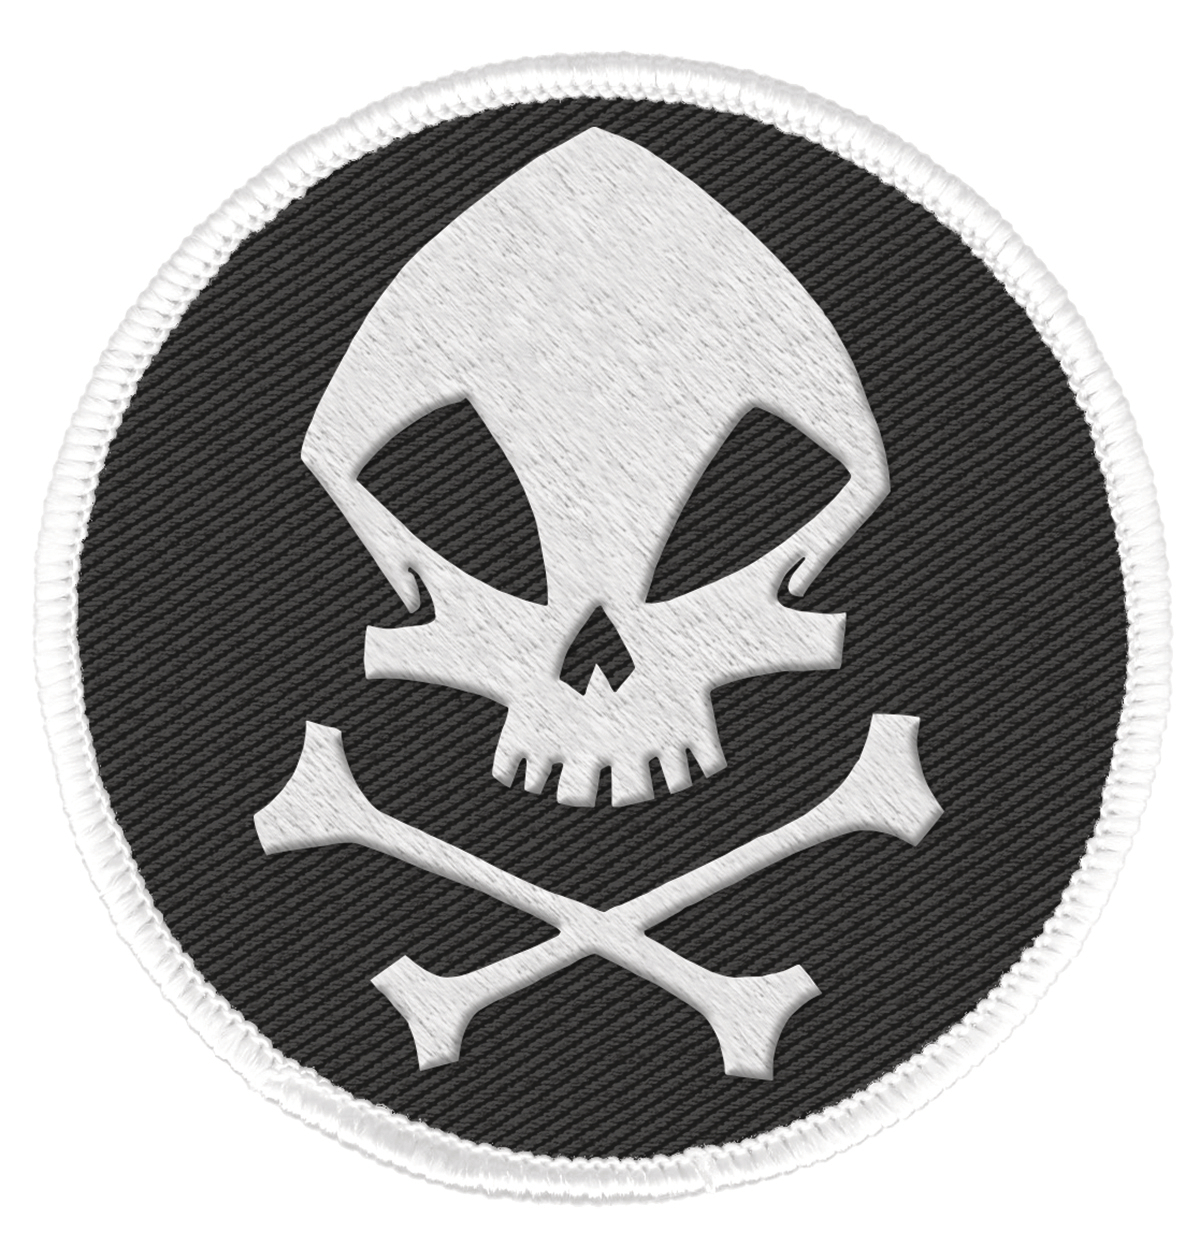 UMBRELLA ACADEMY PATCH KRAKEN SKULL LOGO (O/A)